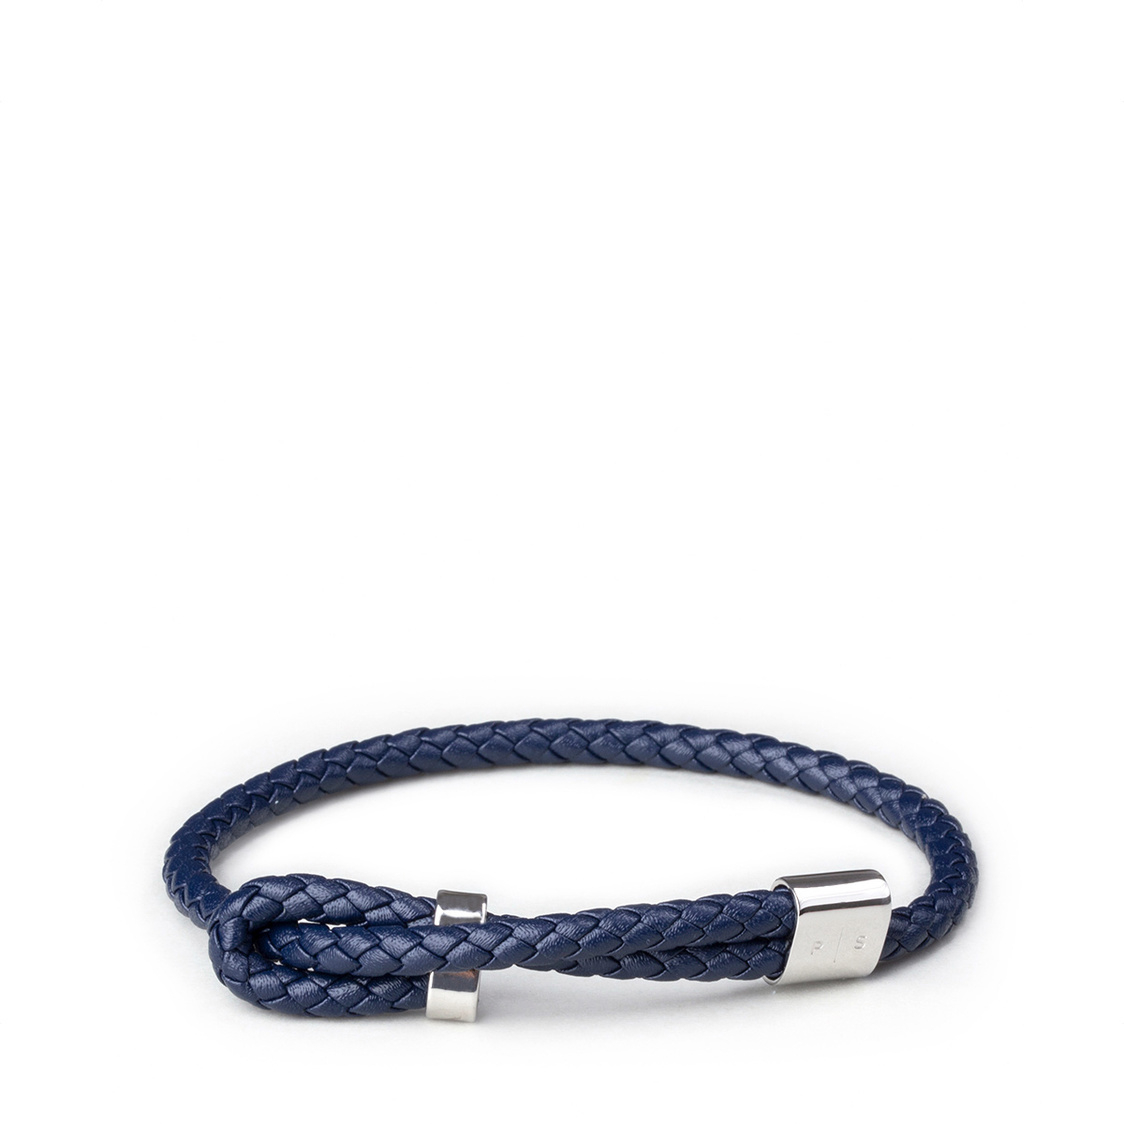 Wve Bracelet - Navy Leather